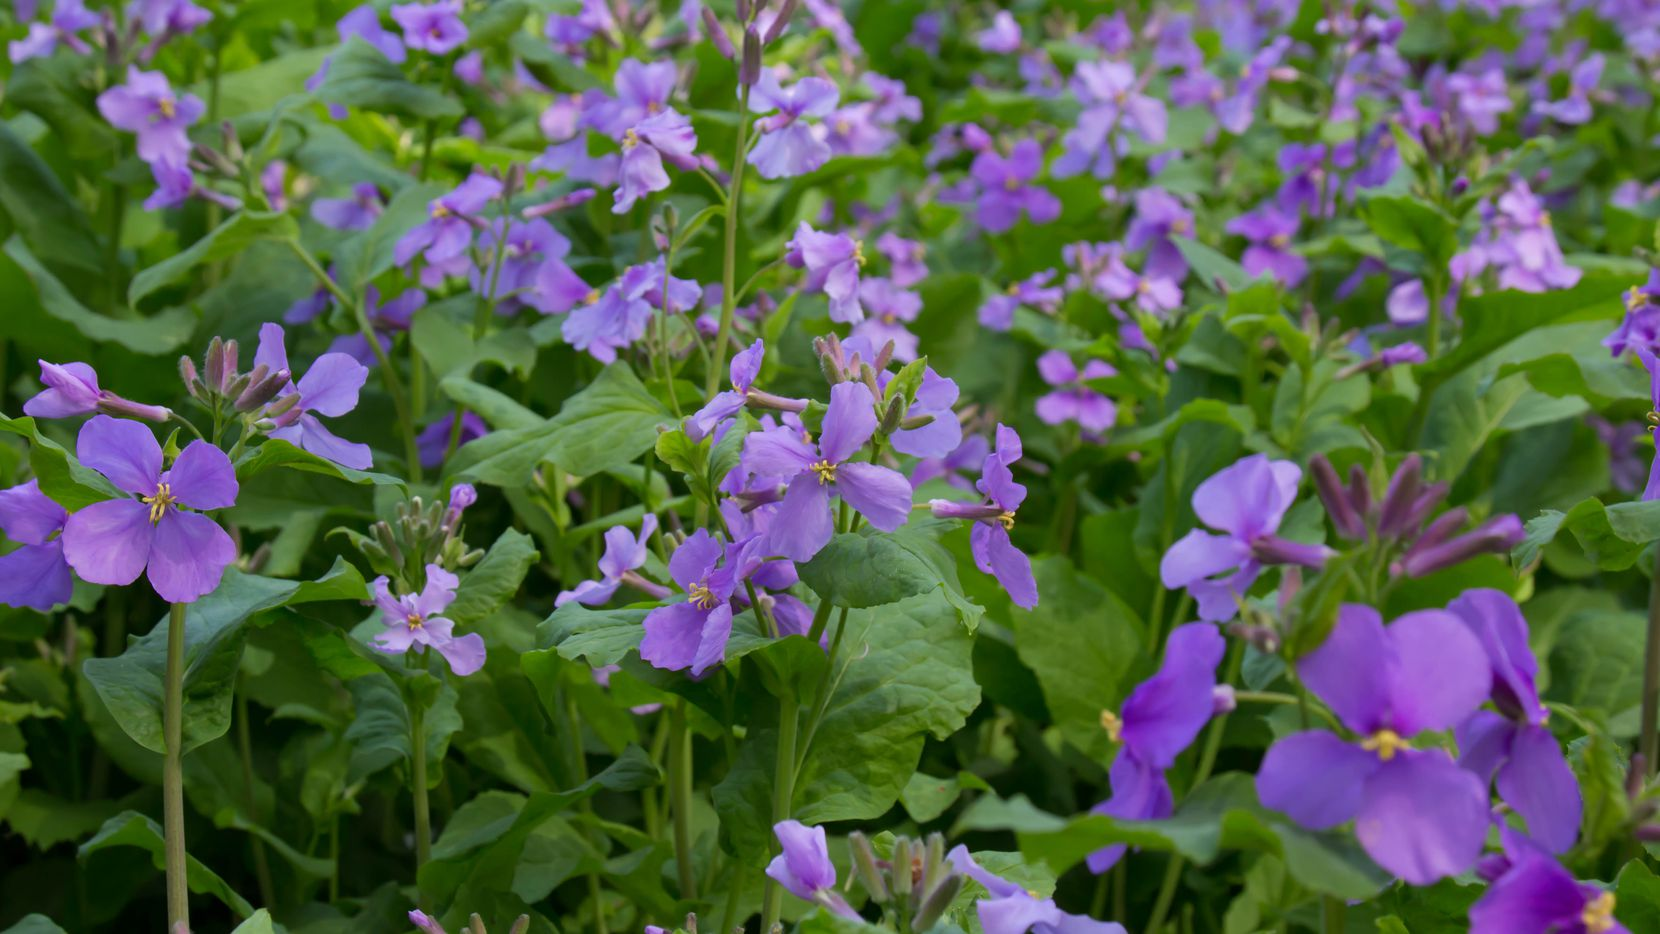 The Chinese violet cress can produce oil good enough to fill your car's crankcase.